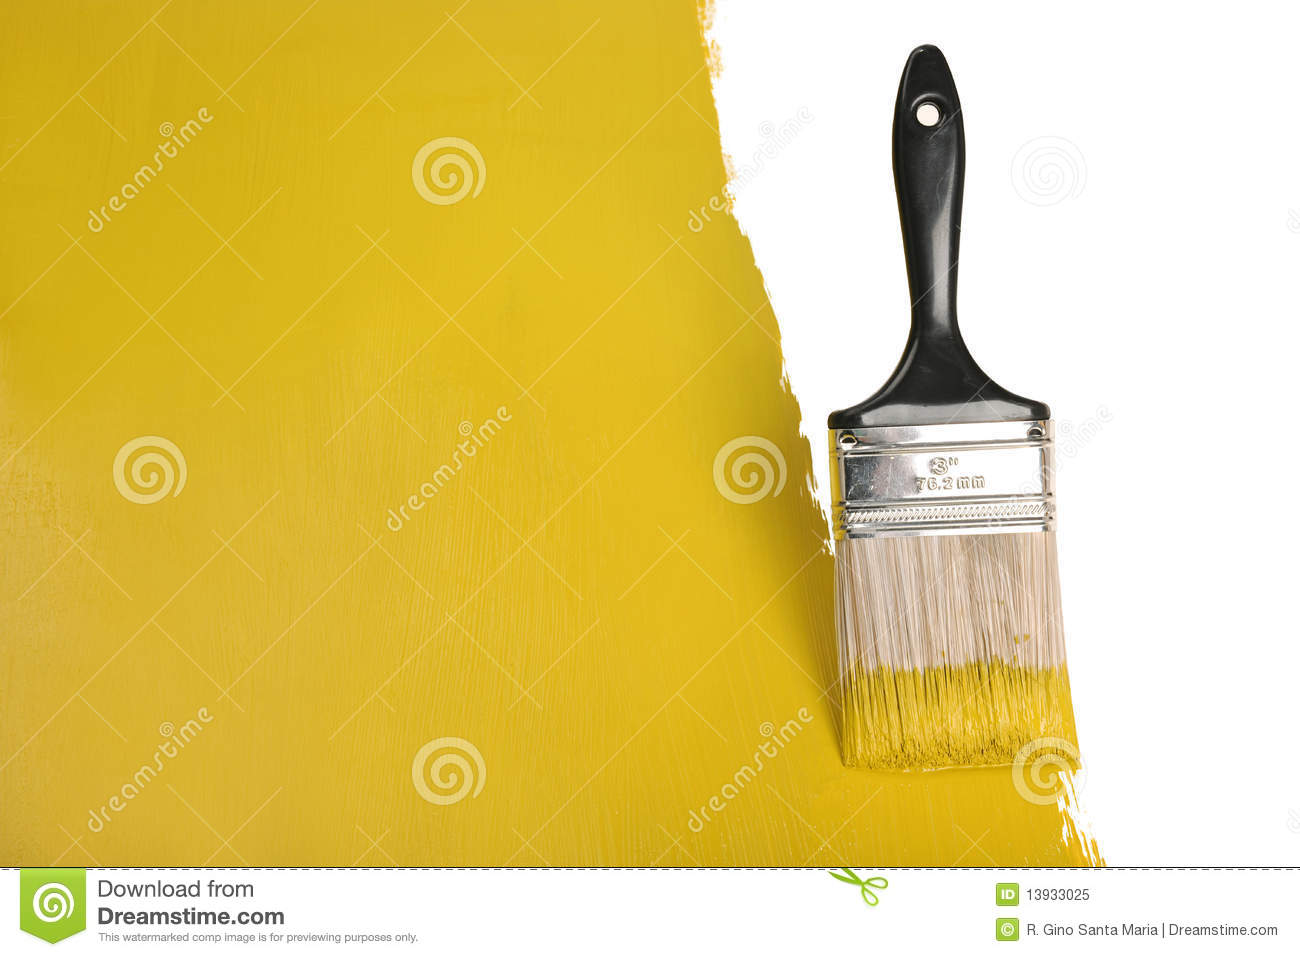 painting a wall yellow stock photo - image: 35867800